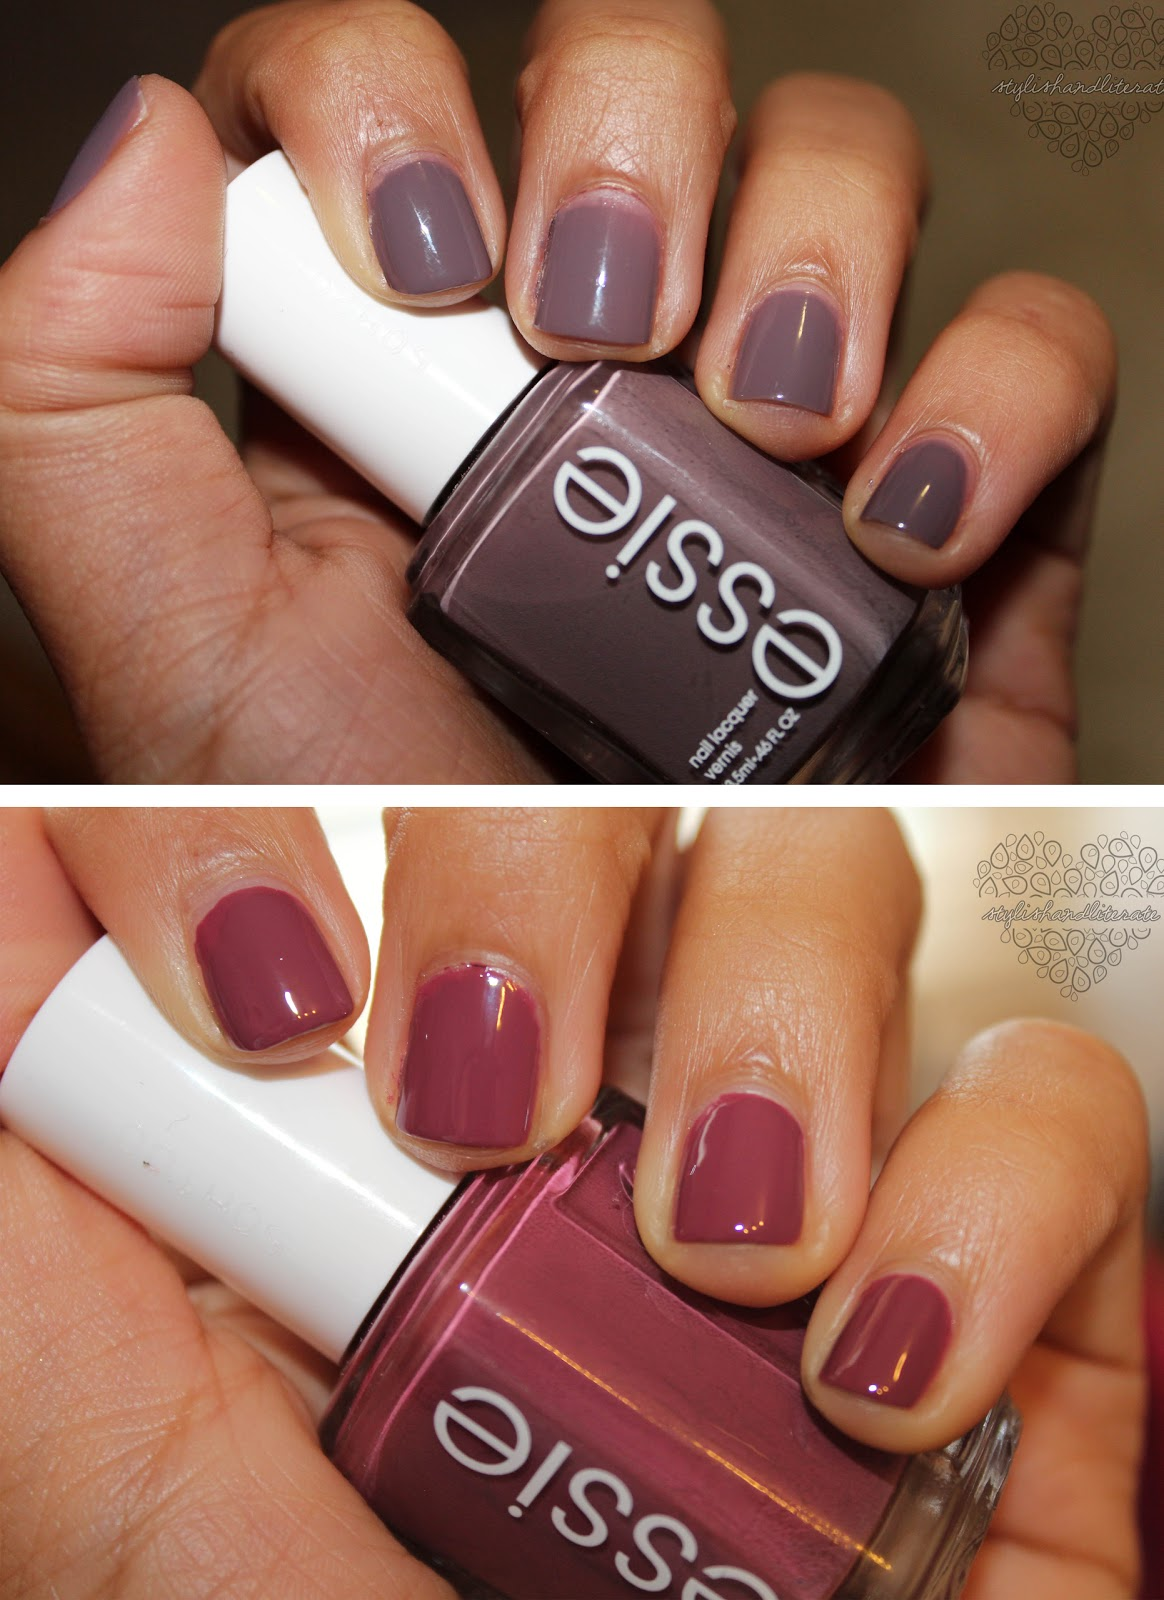 Nails of the Week No.1: Essie Merino Cool & Essie Angora Cardi ...